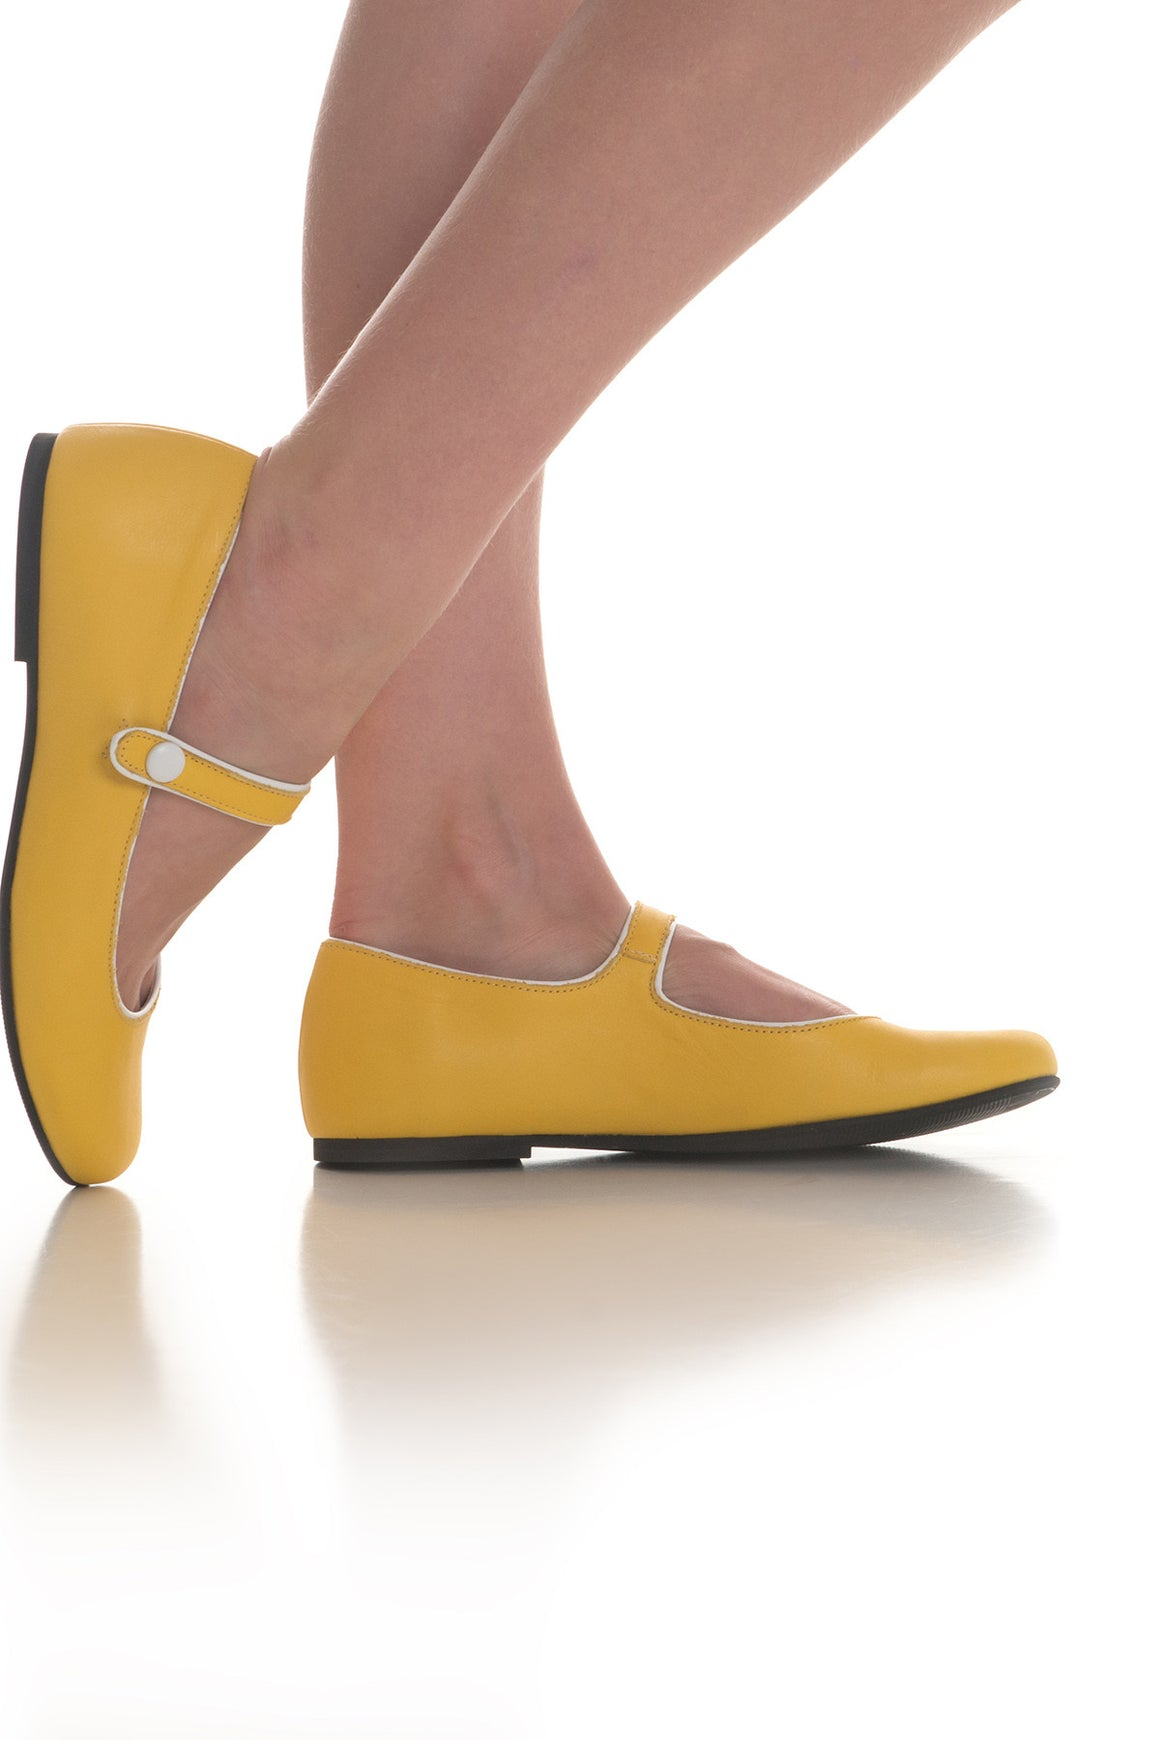 Robinne Shoe- Yellow